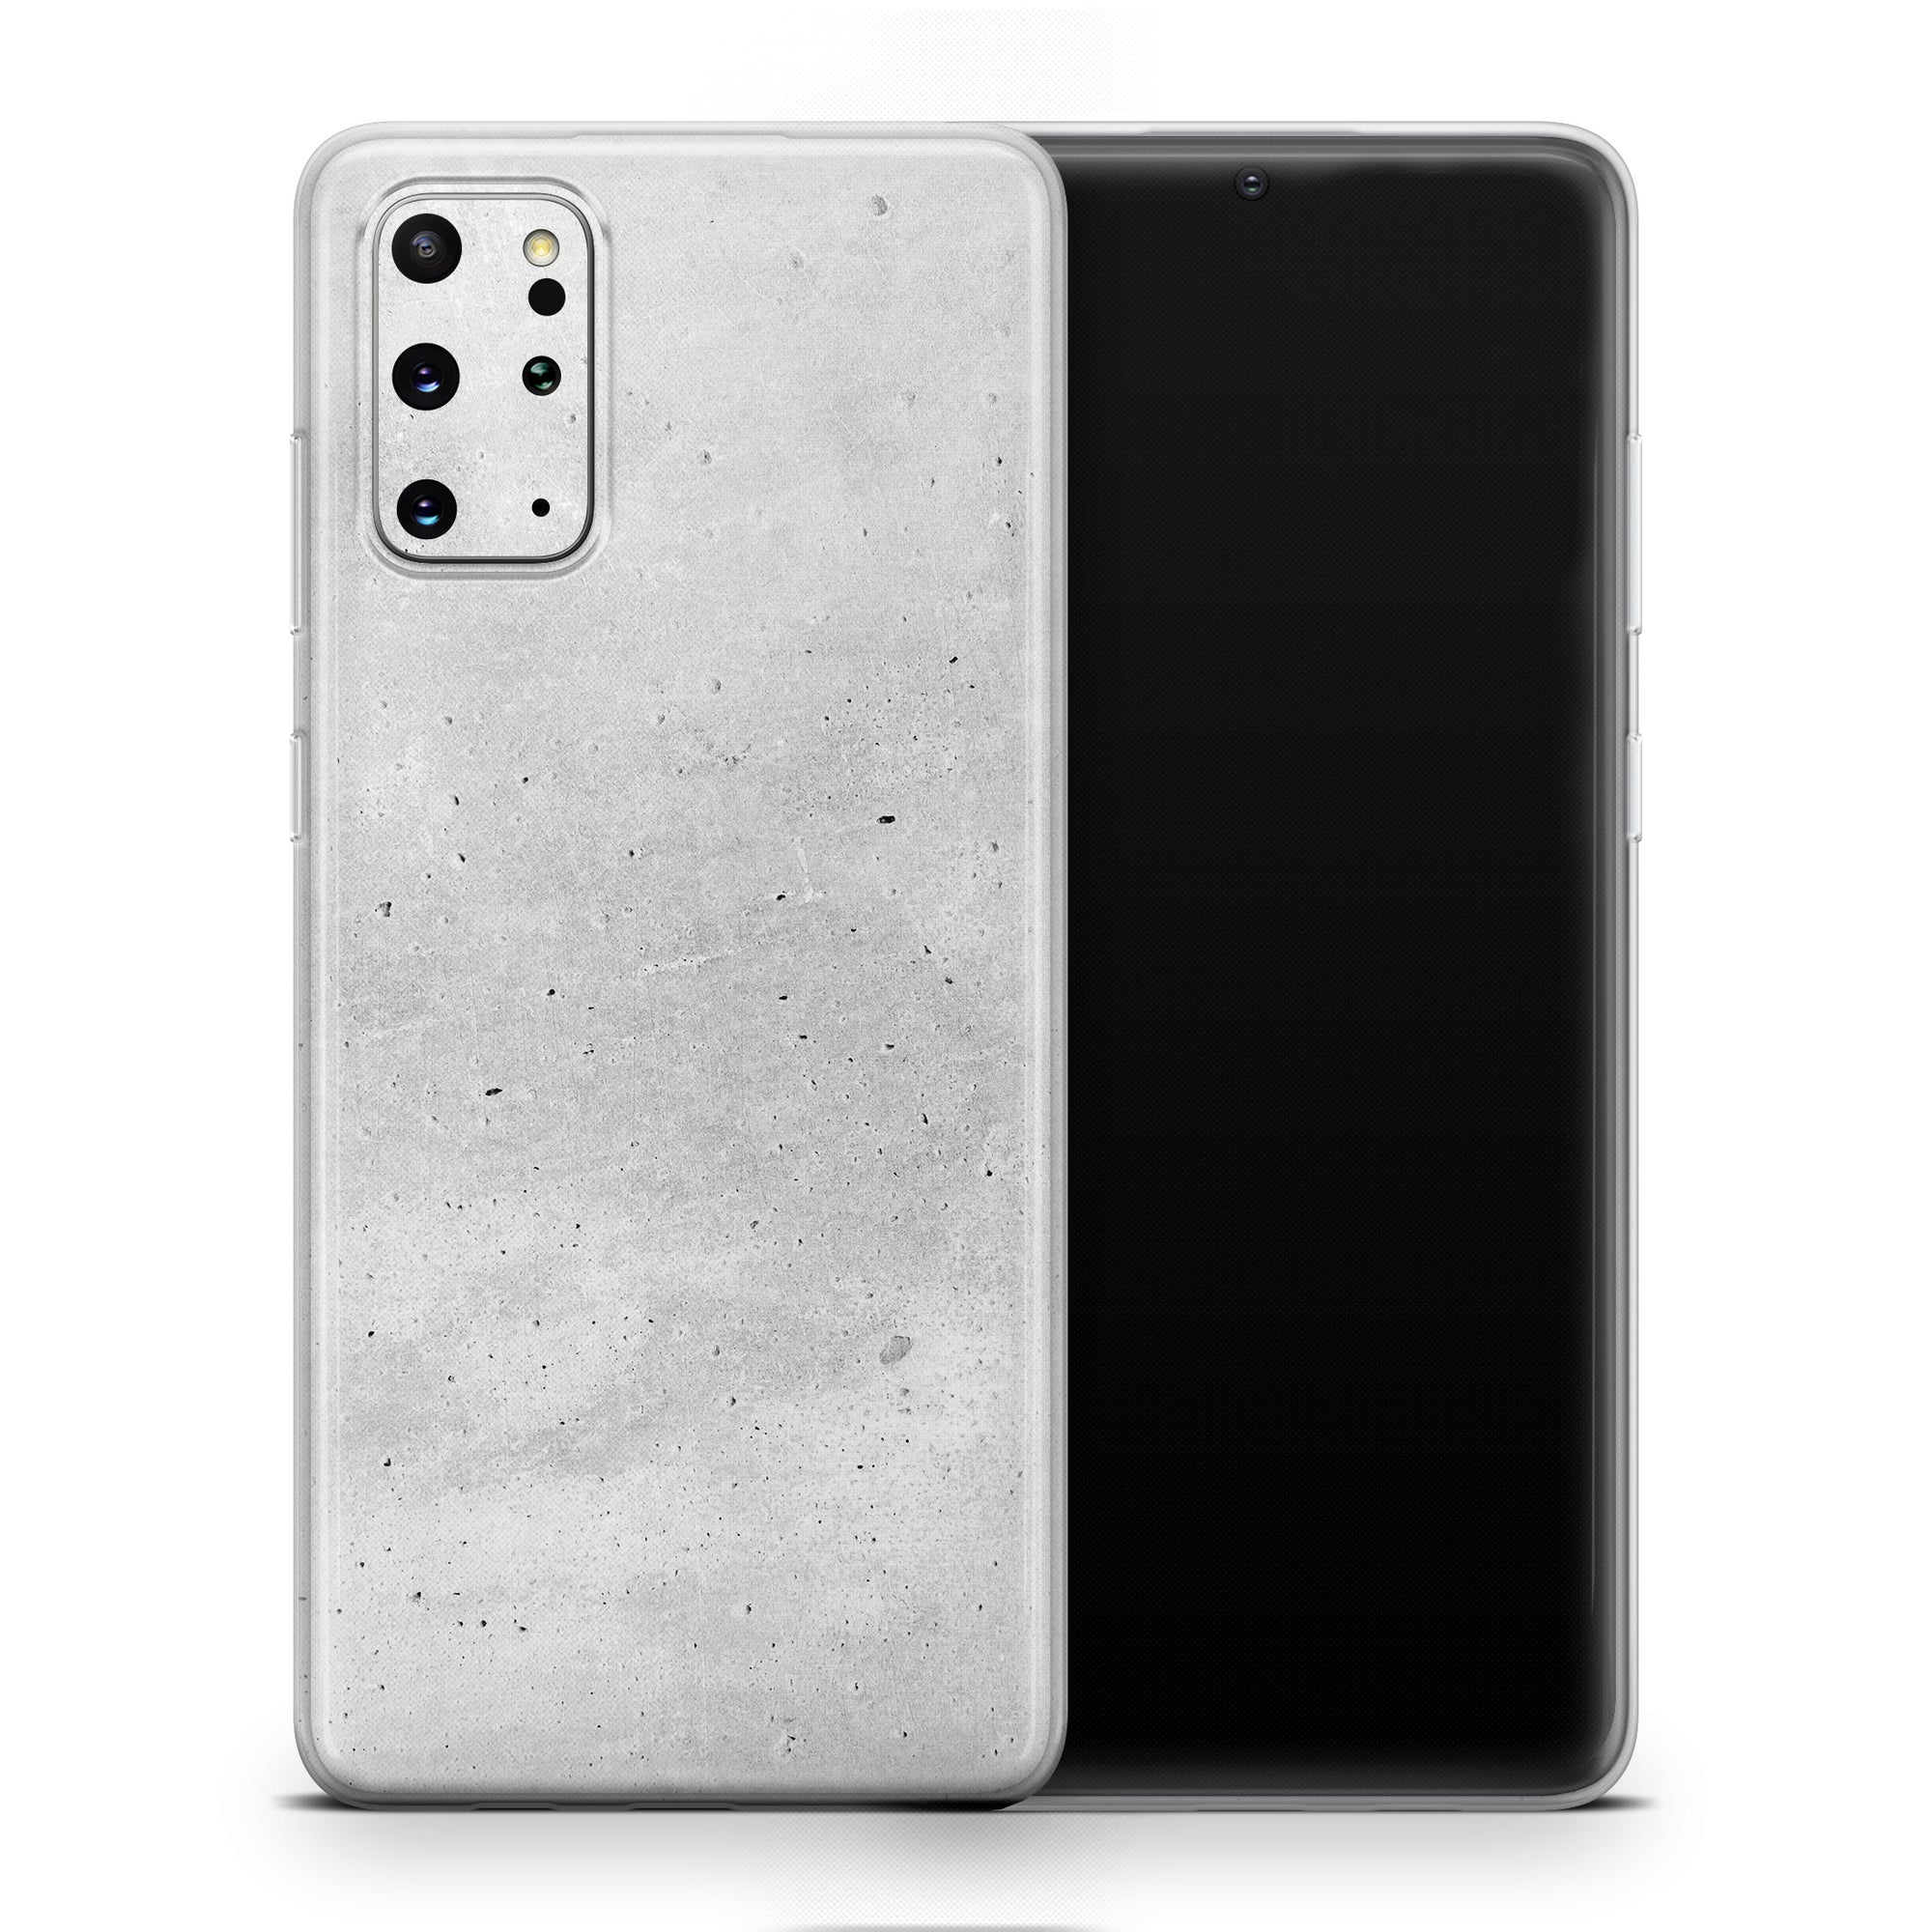 Concrete Galaxy S20 Ultra Skin + Case-Uniqfind